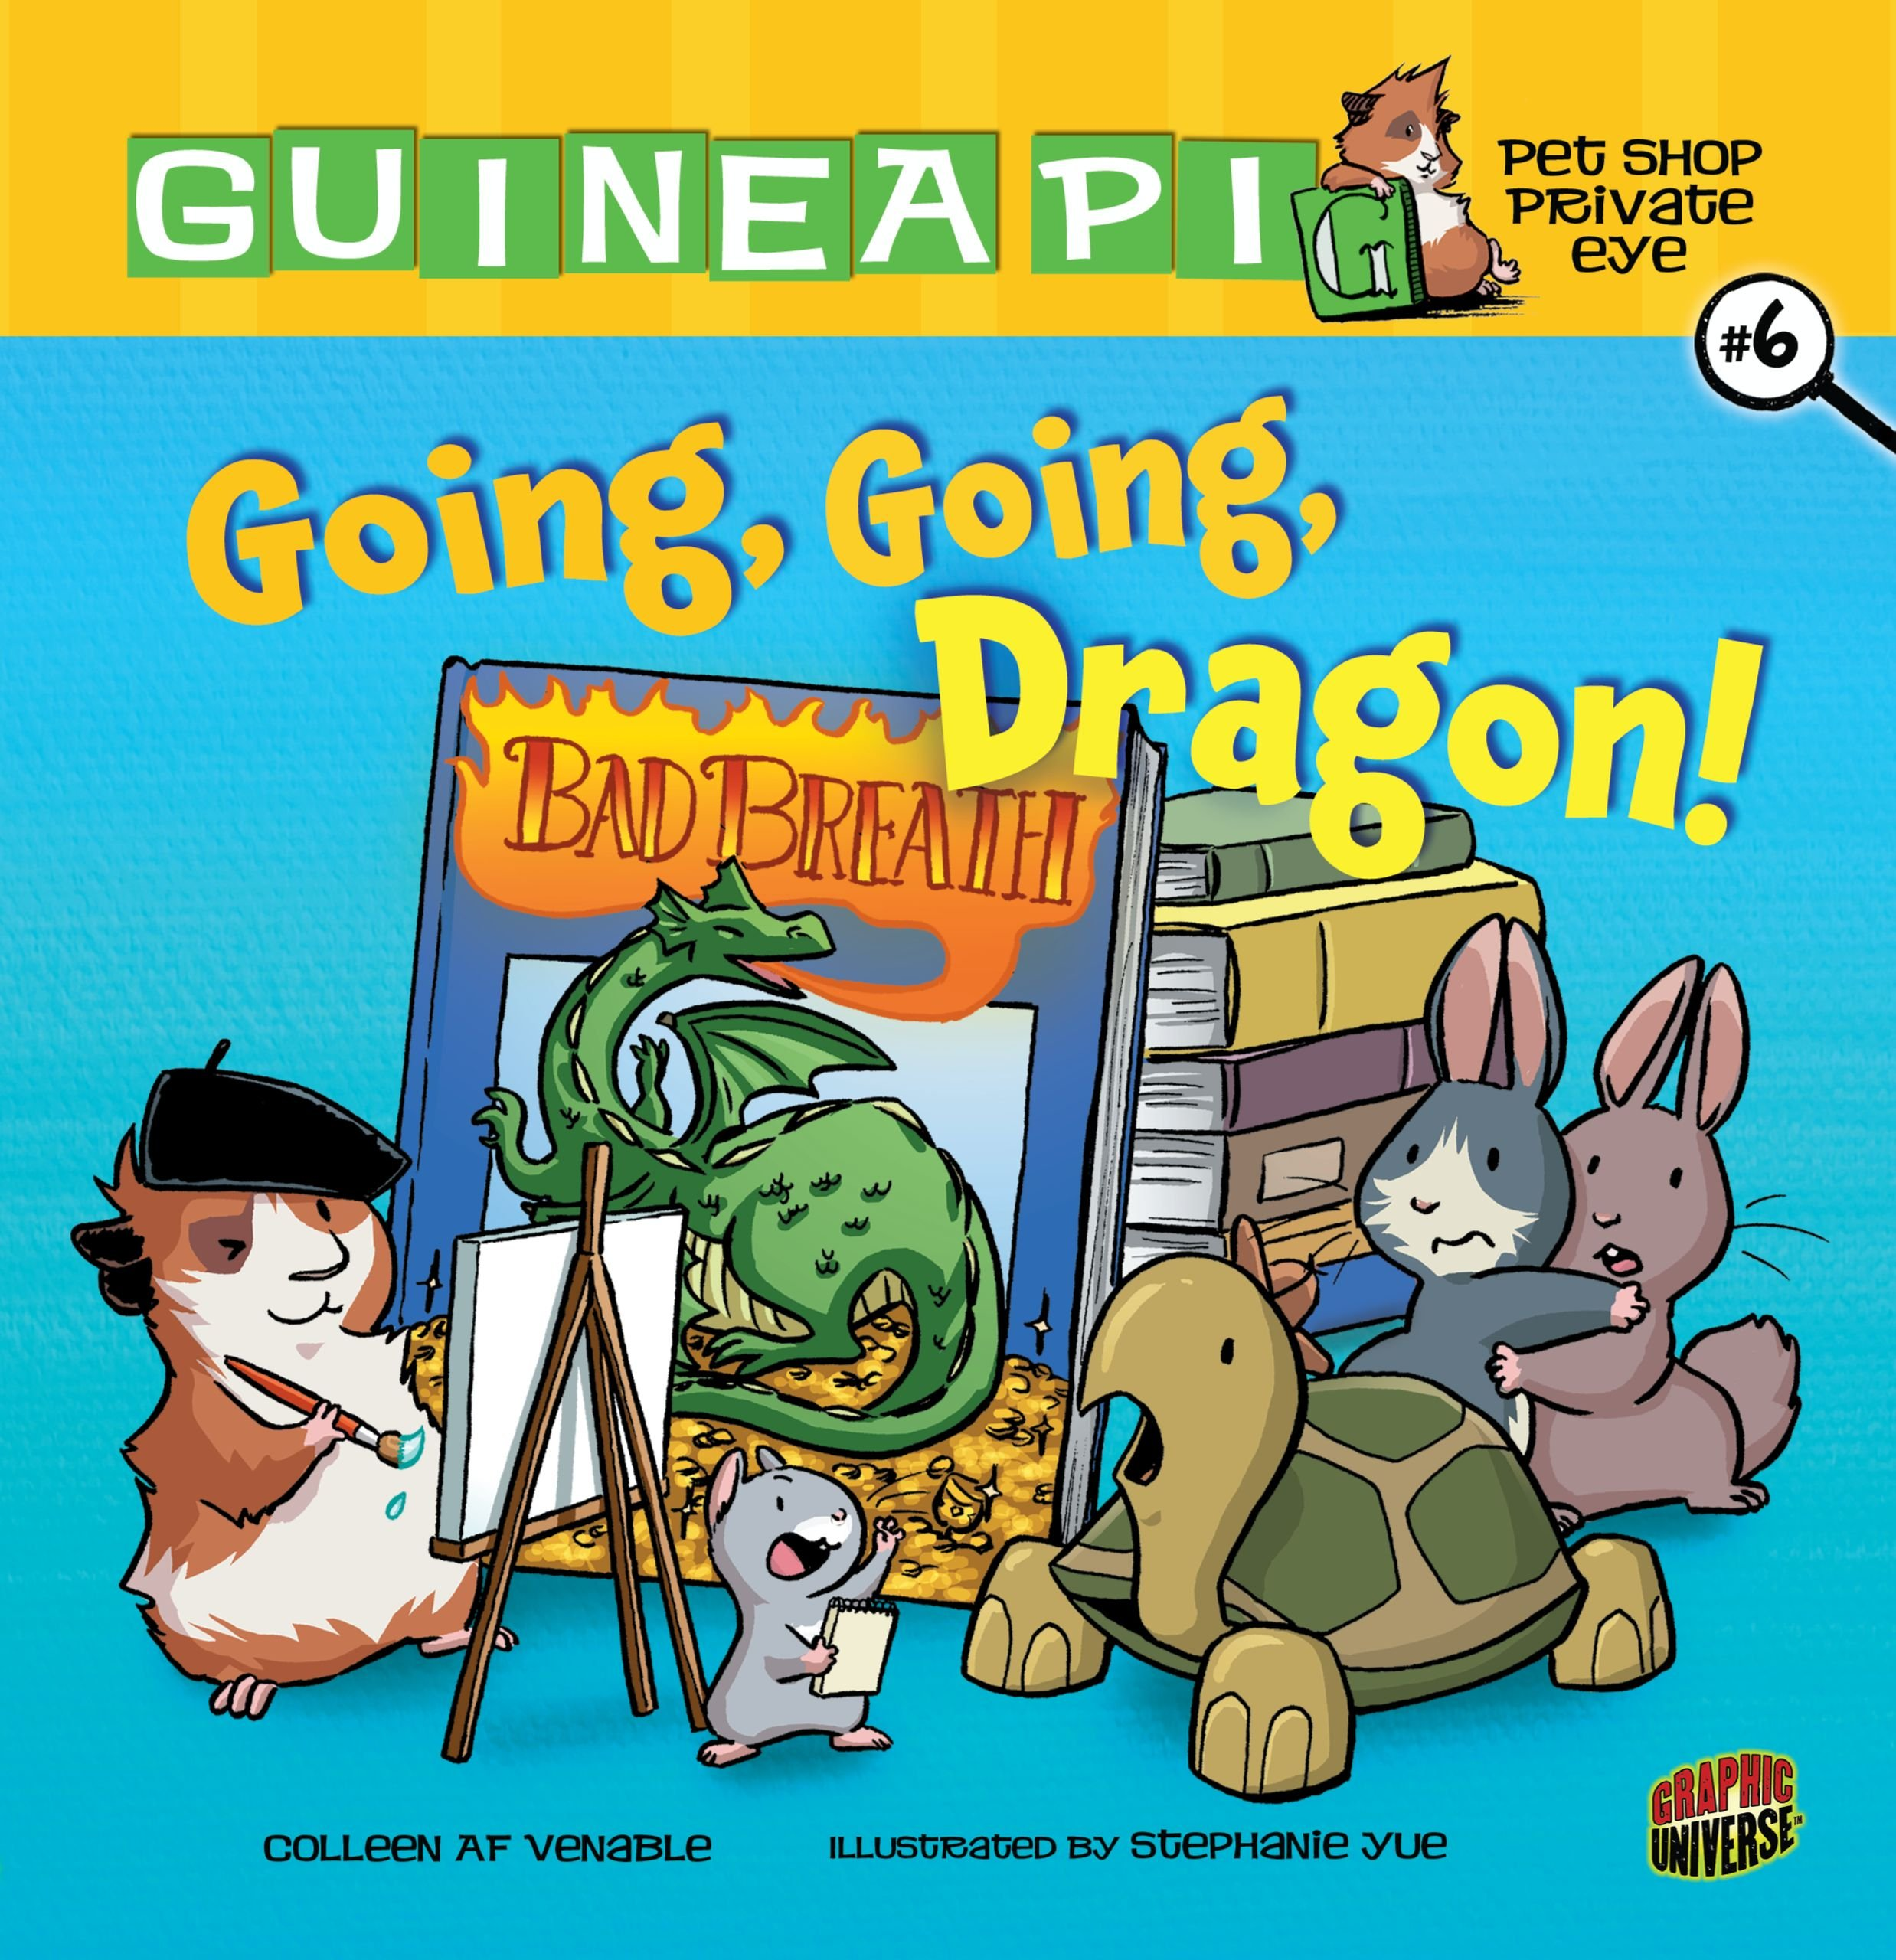 Going, Going, Dragon! (Guinea Pig, Pet Shop Private Eye) pdf